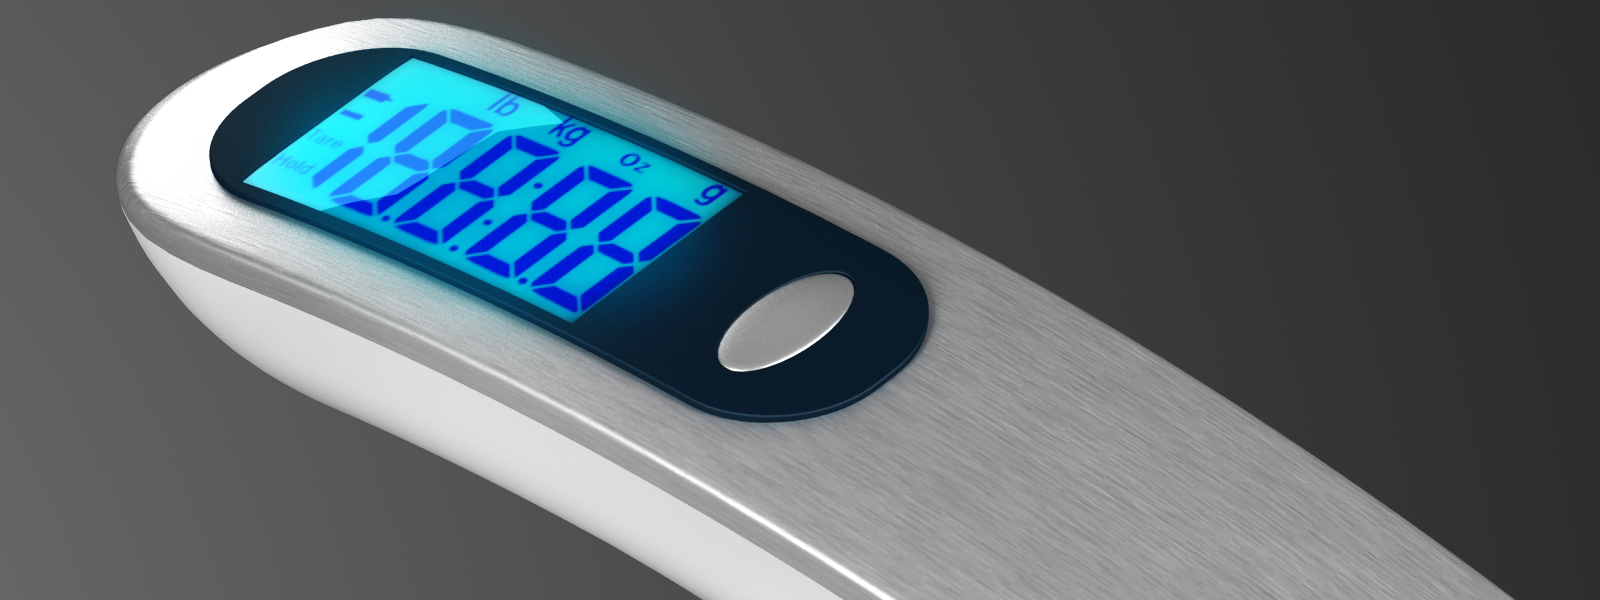 Luggage Scale 3D Visualisation-1